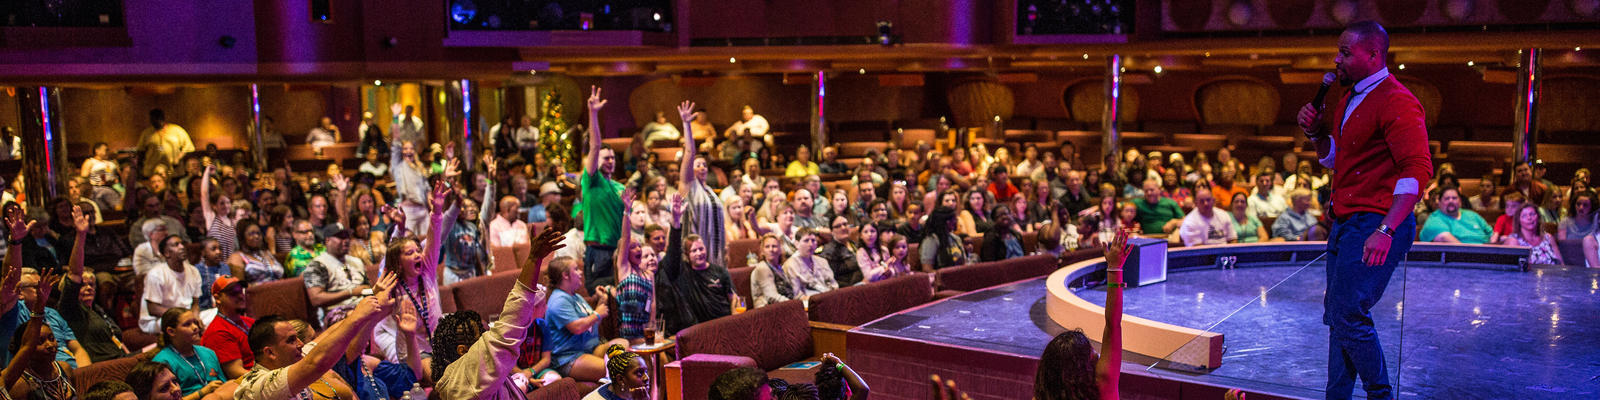 Cruise directors are in charged of passenger activities and entertainment on a cruise ship (Photo: Carnival Cruise Line)